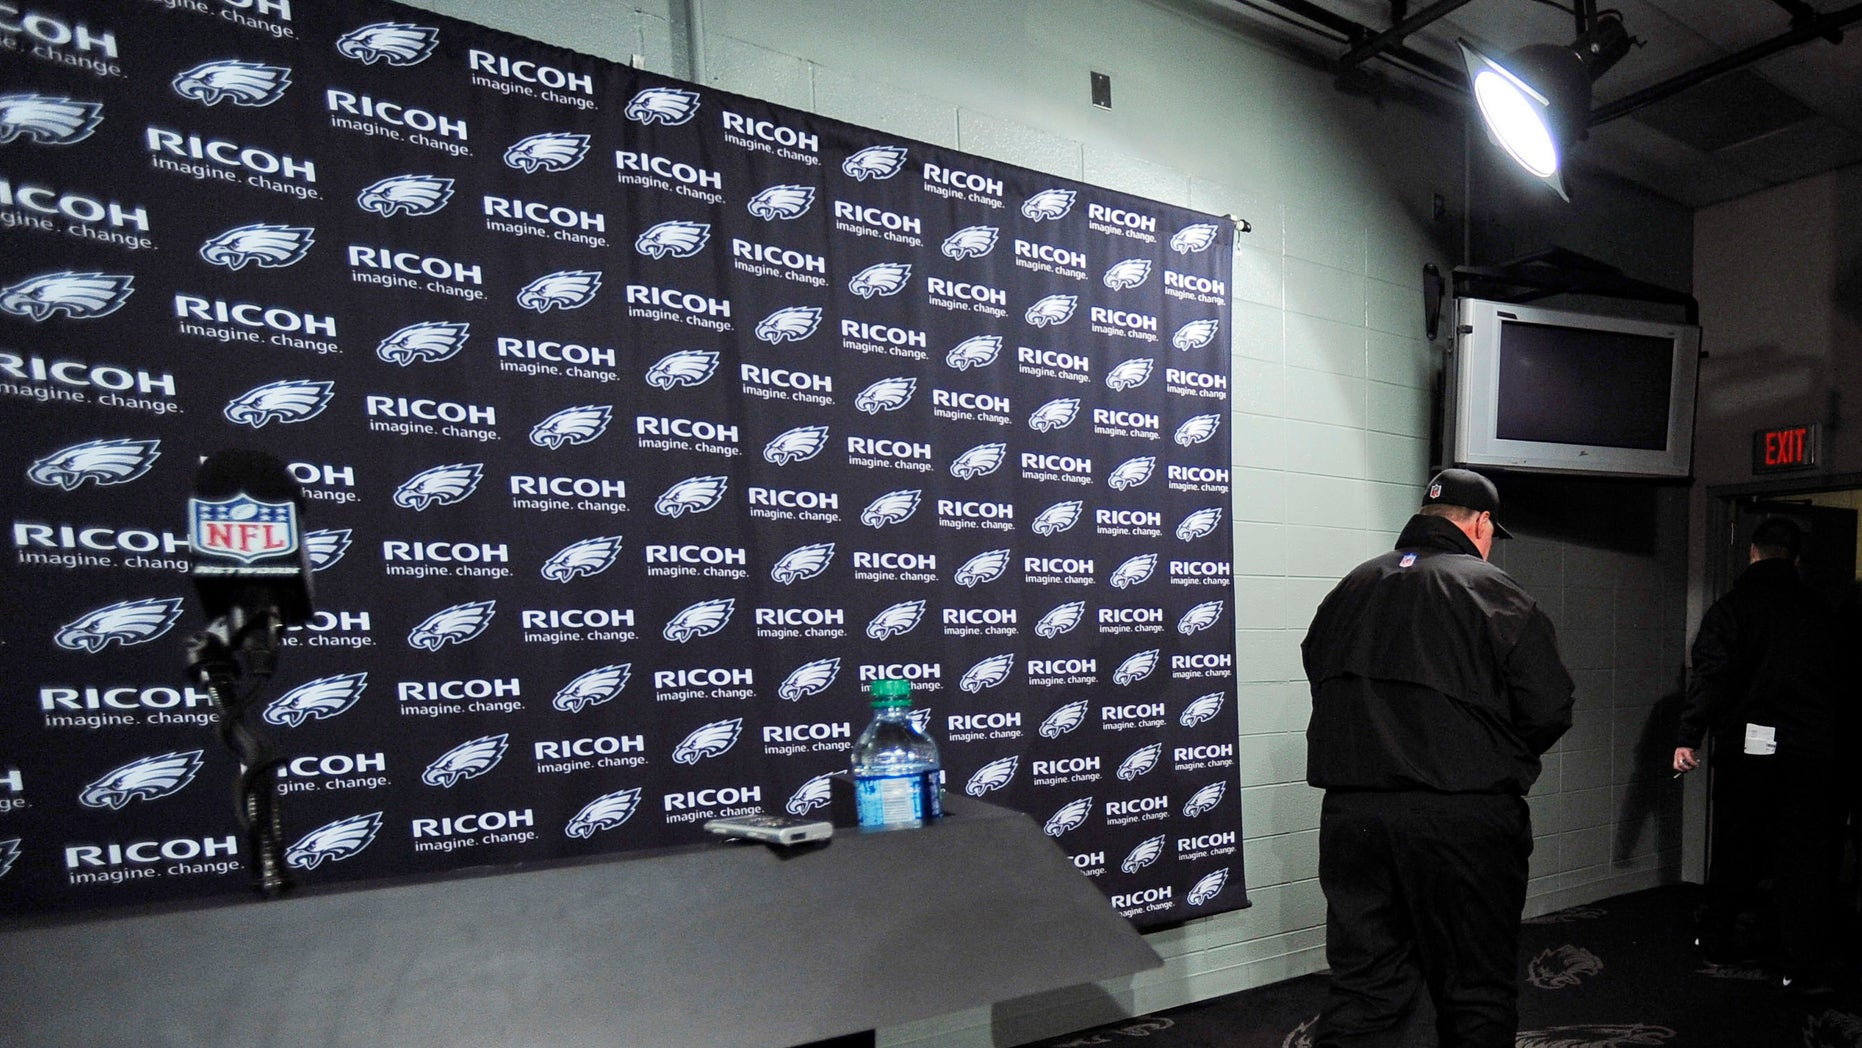 Philadelphia Eagles coach Andy Reid leaves after a news conference following an NFL football game against the Washington Redskins, Sunday, Dec. 23, 2012, in Philadelphia. Washington won 27-20. (AP Photo/Michael Perez)